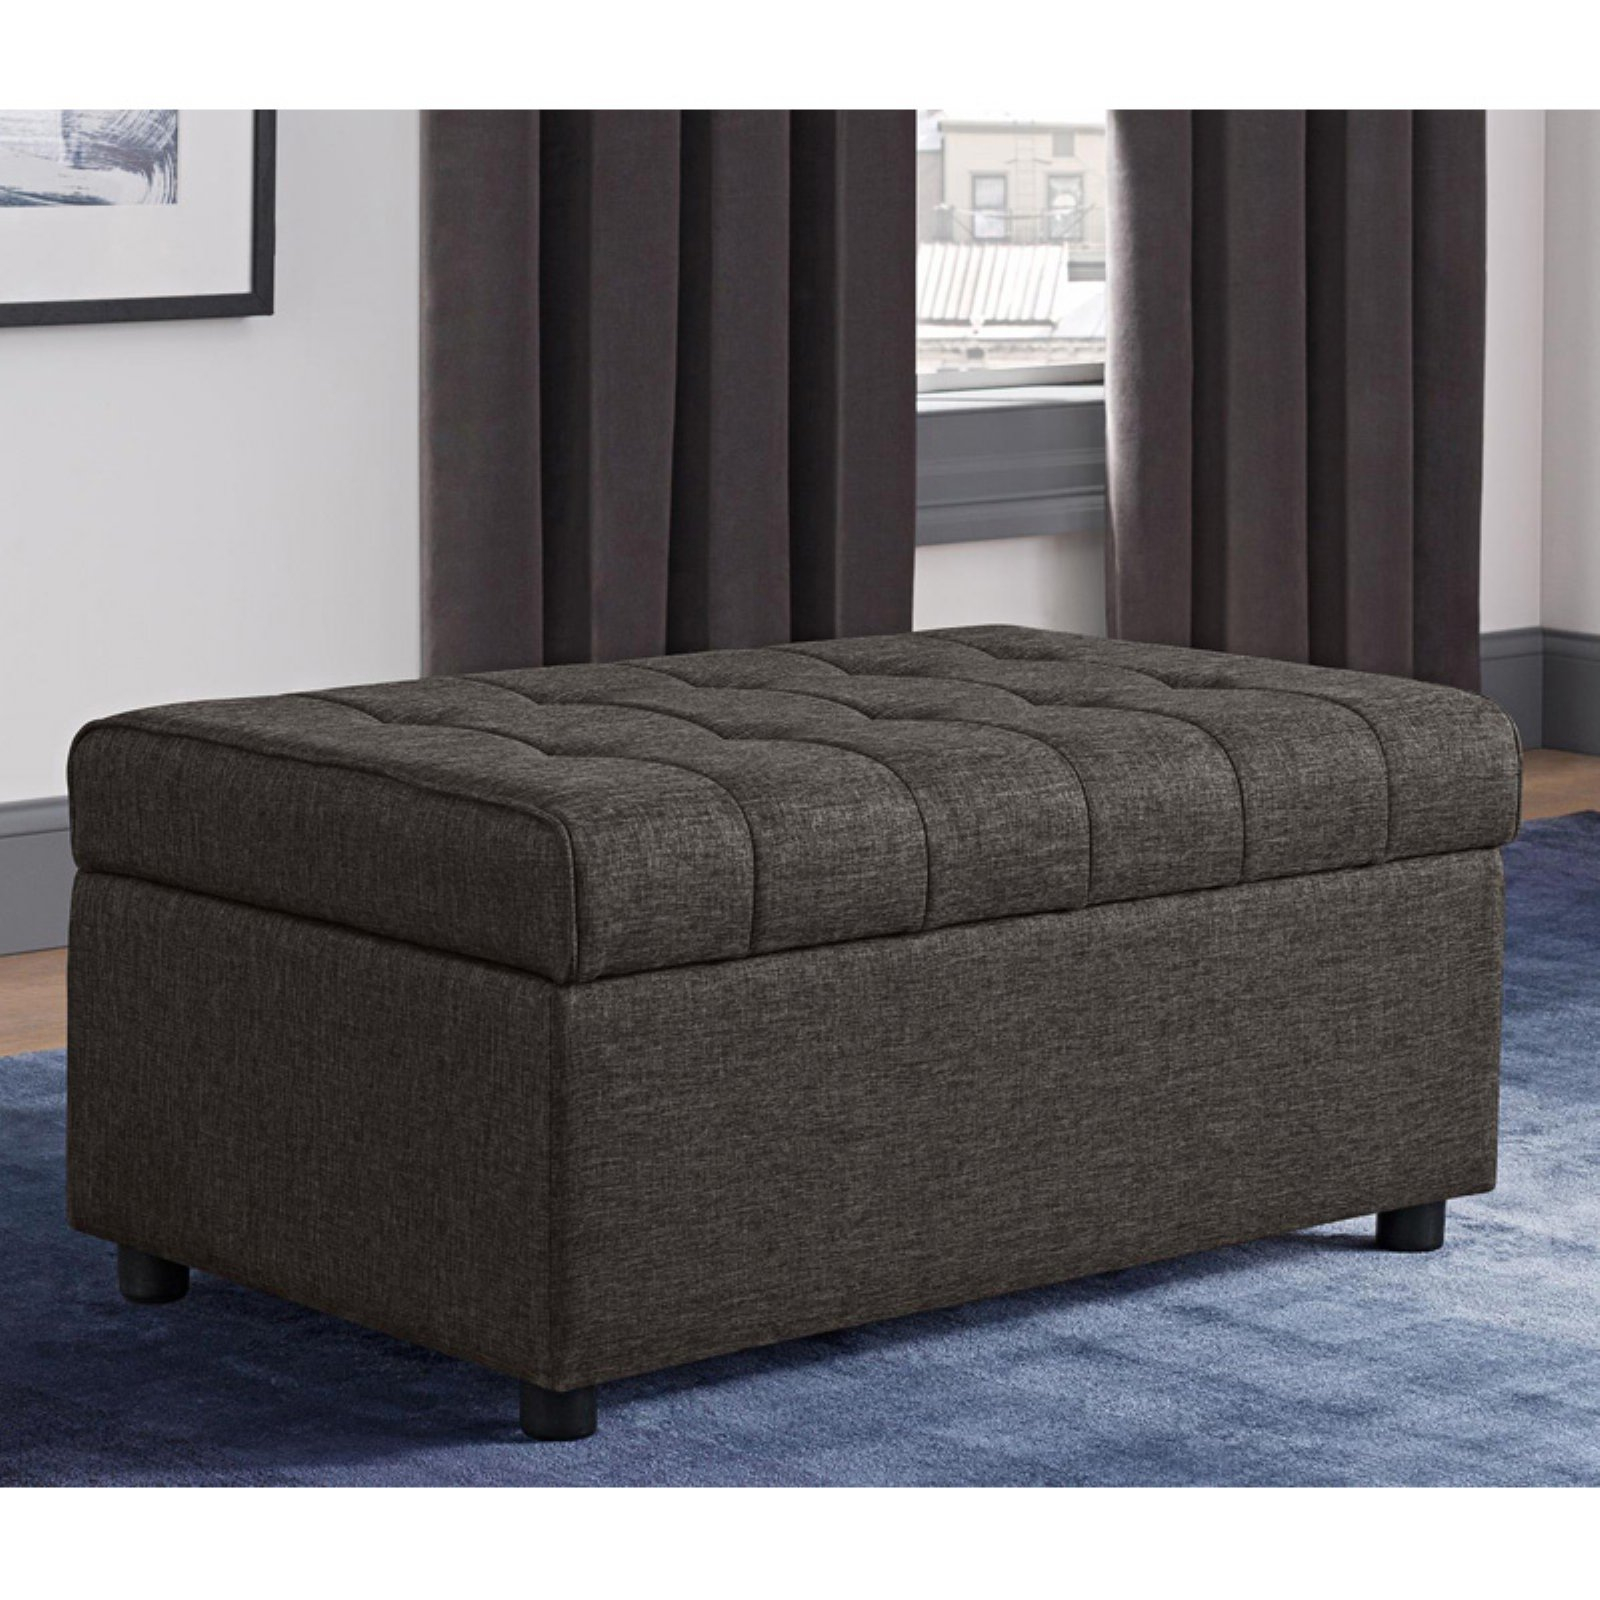 Dhp Emily Rectangular Linen Storage Ottoman Blue In 2019 within proportions 1600 X 1600